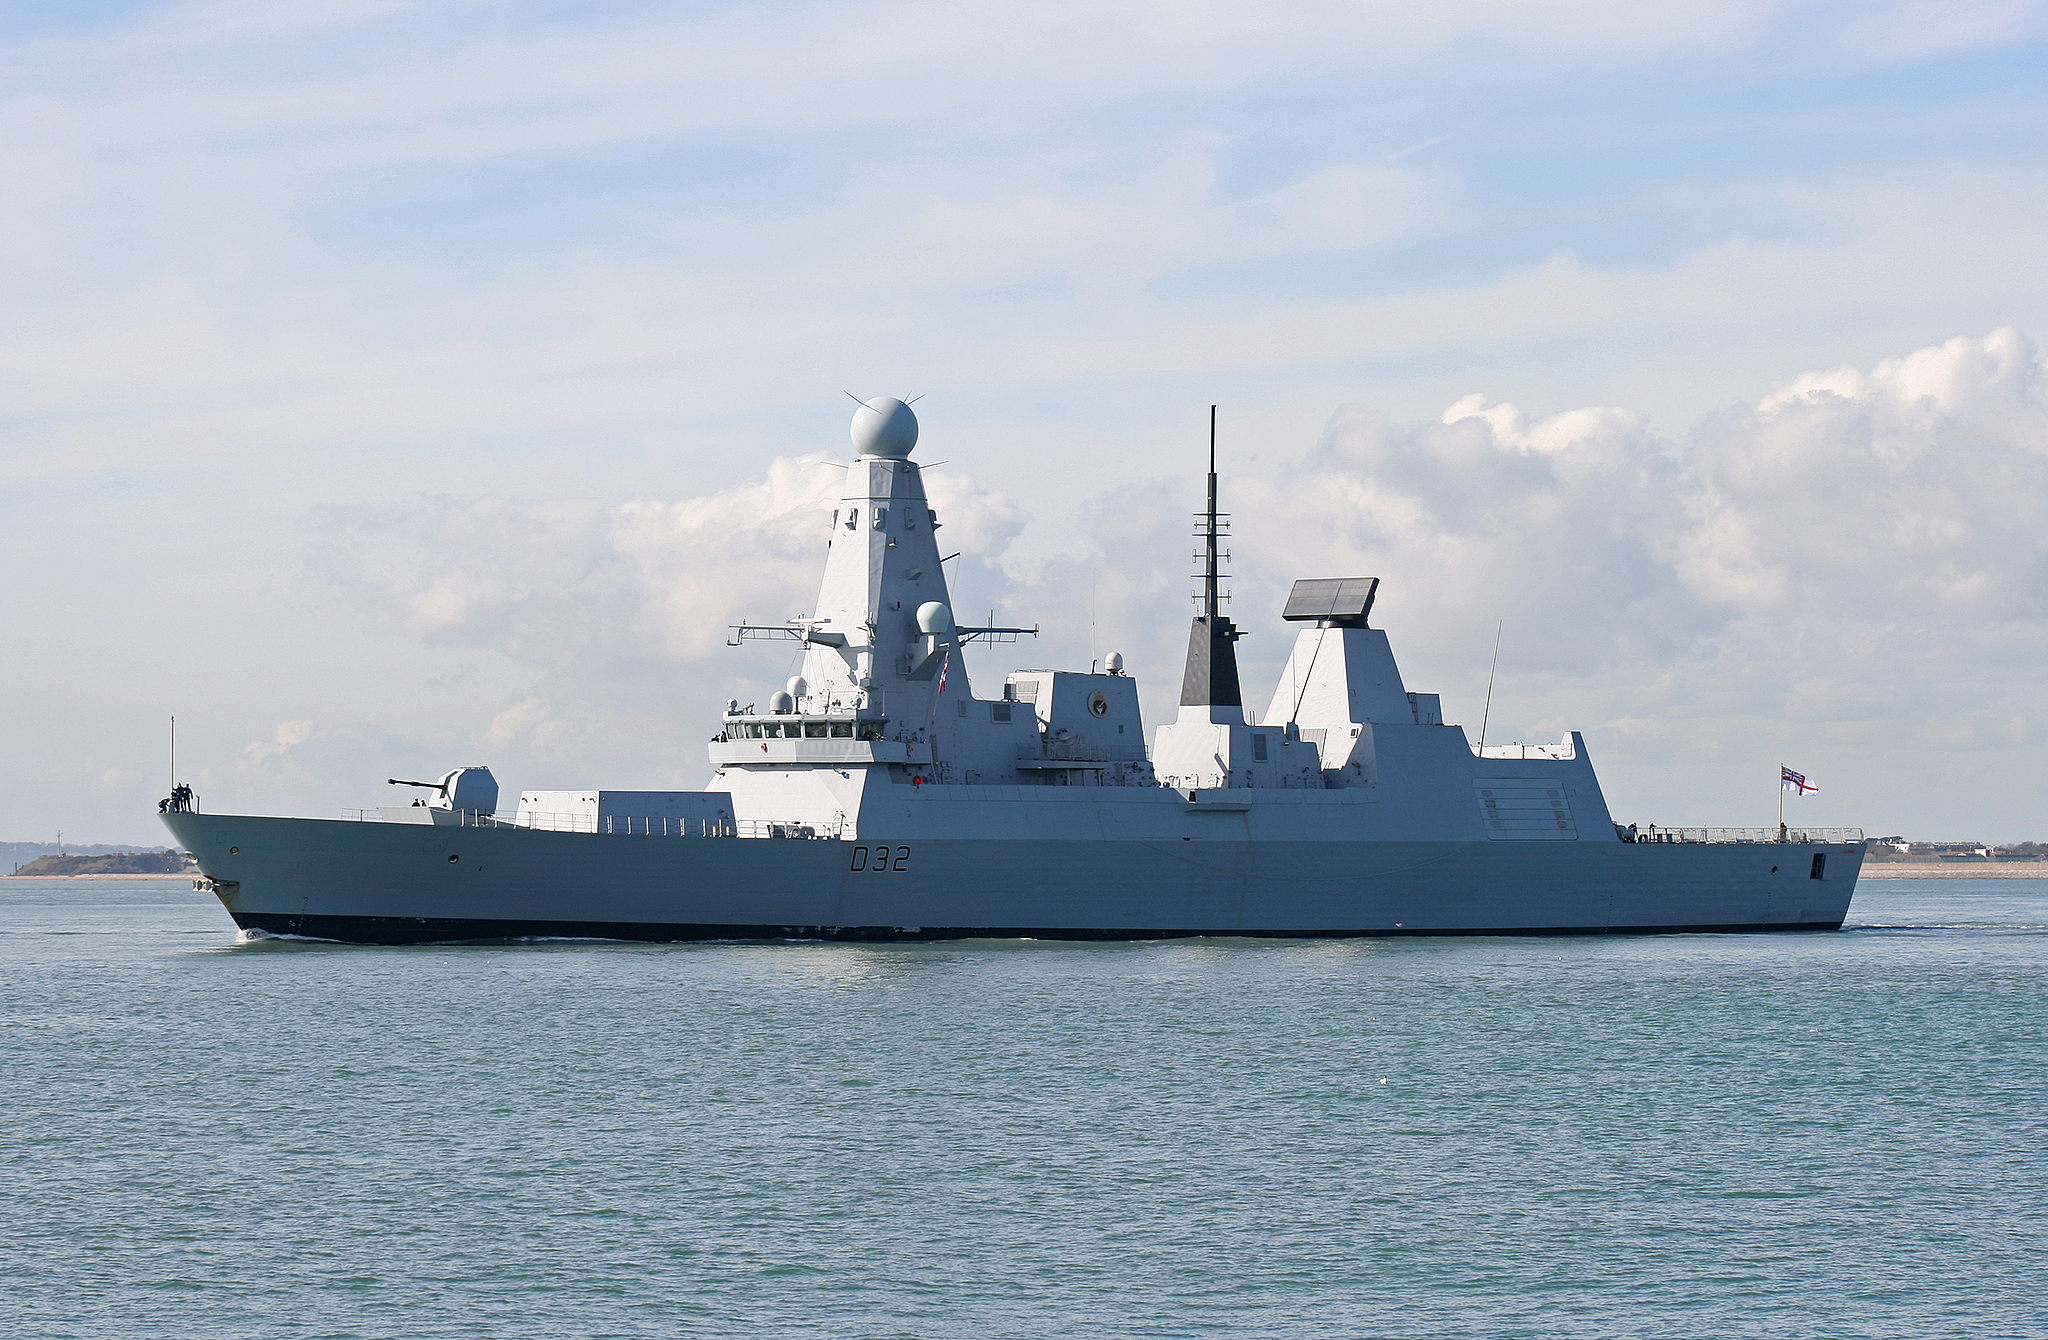 File:HMS Daring-1.jpg - Wikipedia, the free encyclopedia